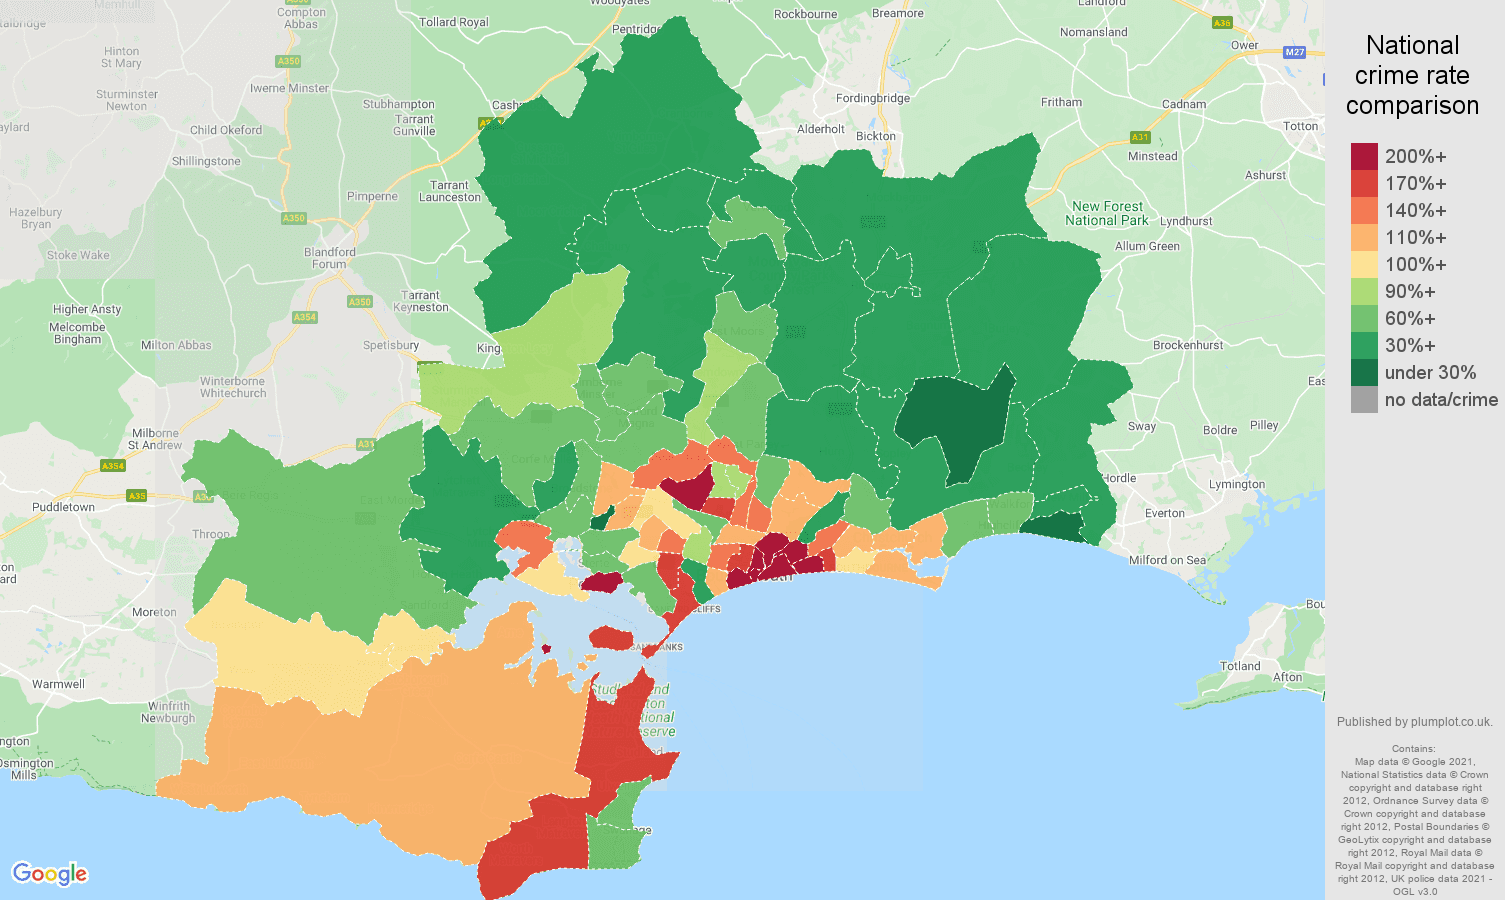 Bournemouth antisocial behaviour crime rate comparison map